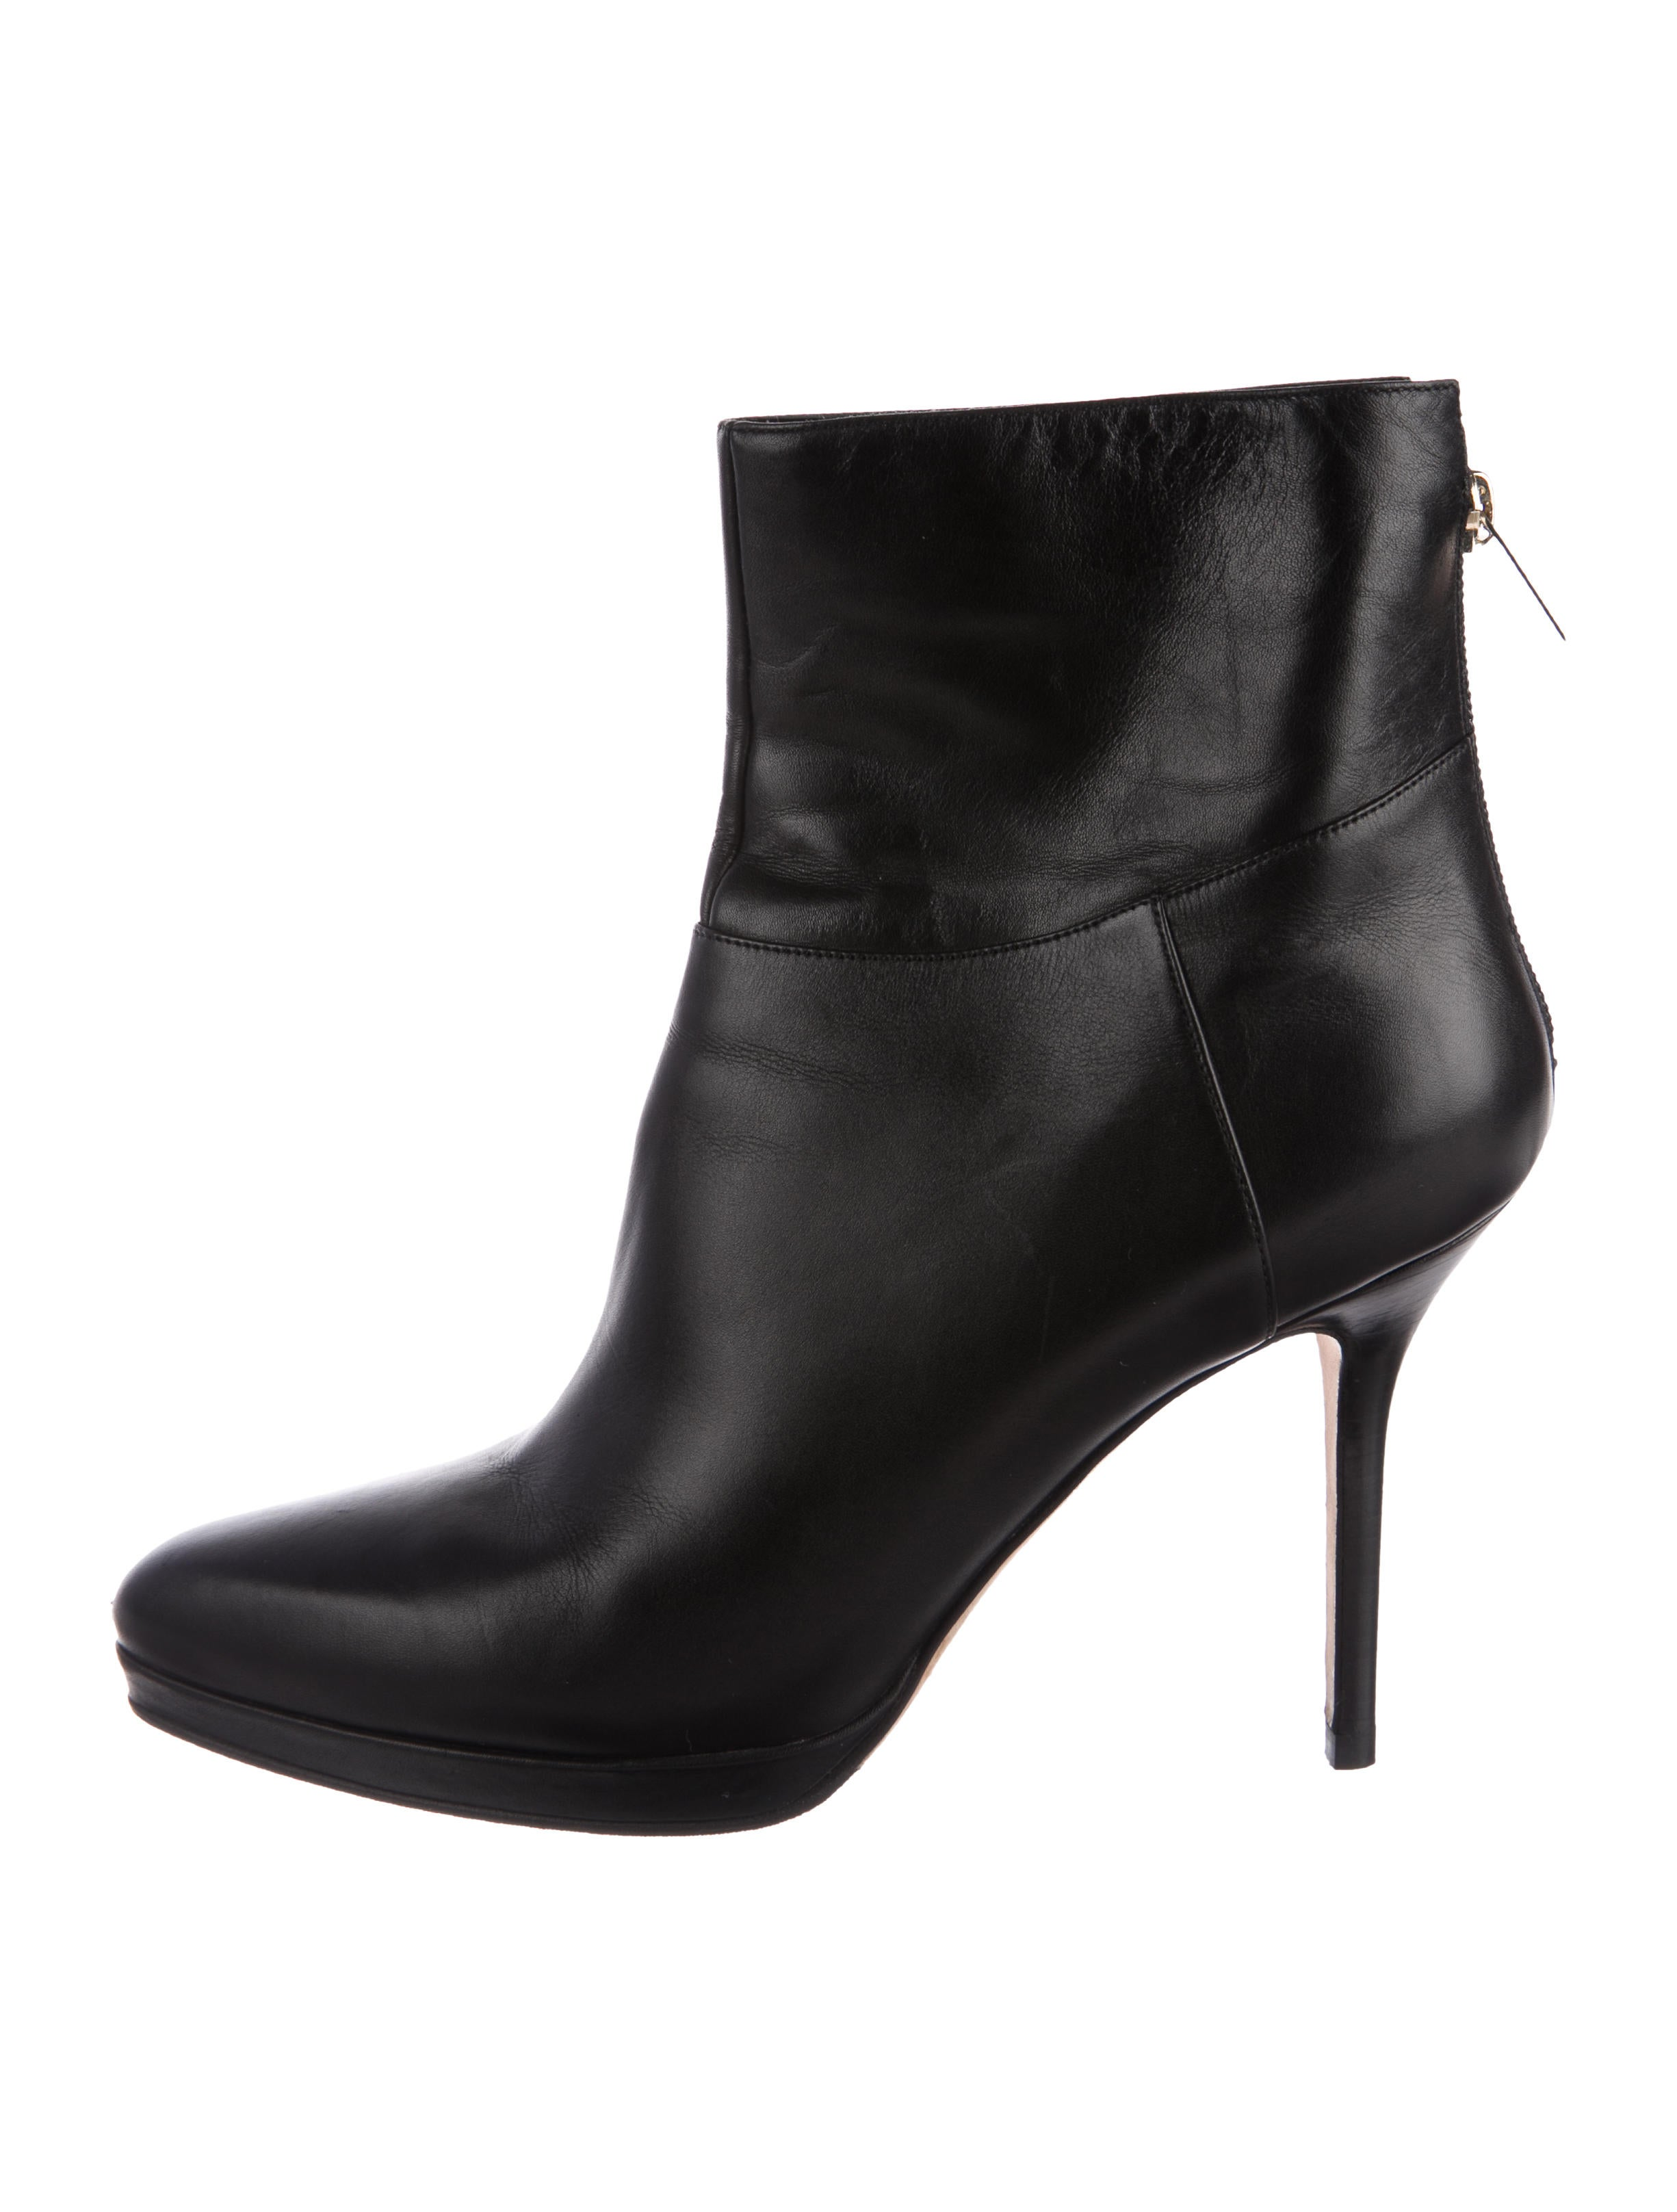 clearance brand new unisex choice online Jimmy Choo Leather Semi Pointed-Toe Ankle Boots big discount cheap sale low price sale low shipping VTnn2K02